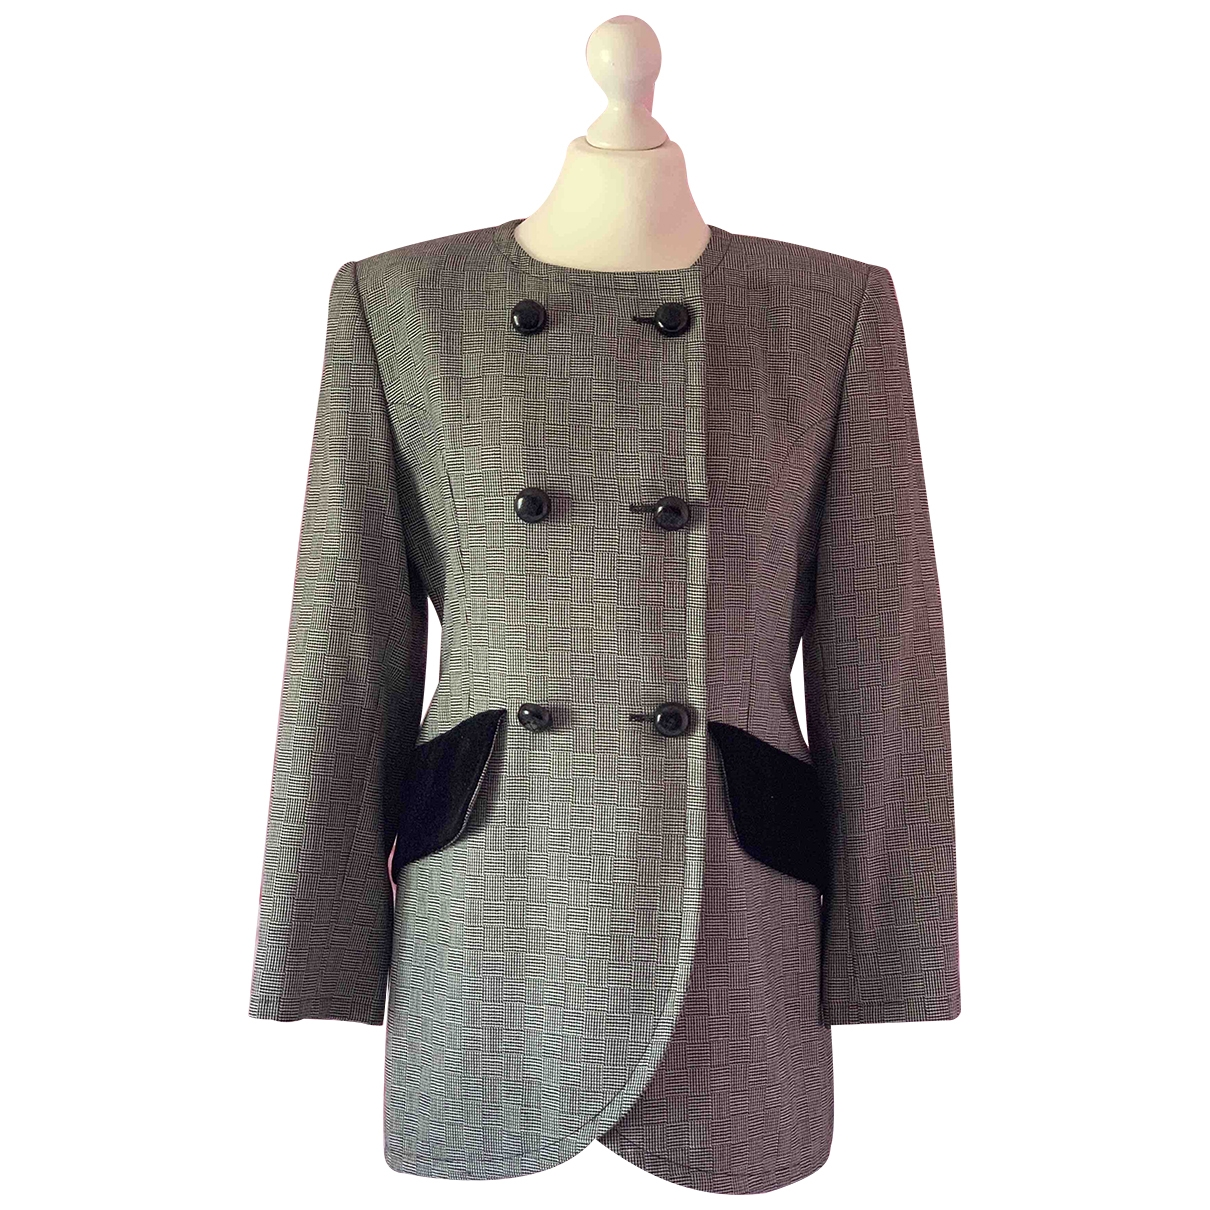 Givenchy \N Anthracite Wool jacket for Women 42 FR